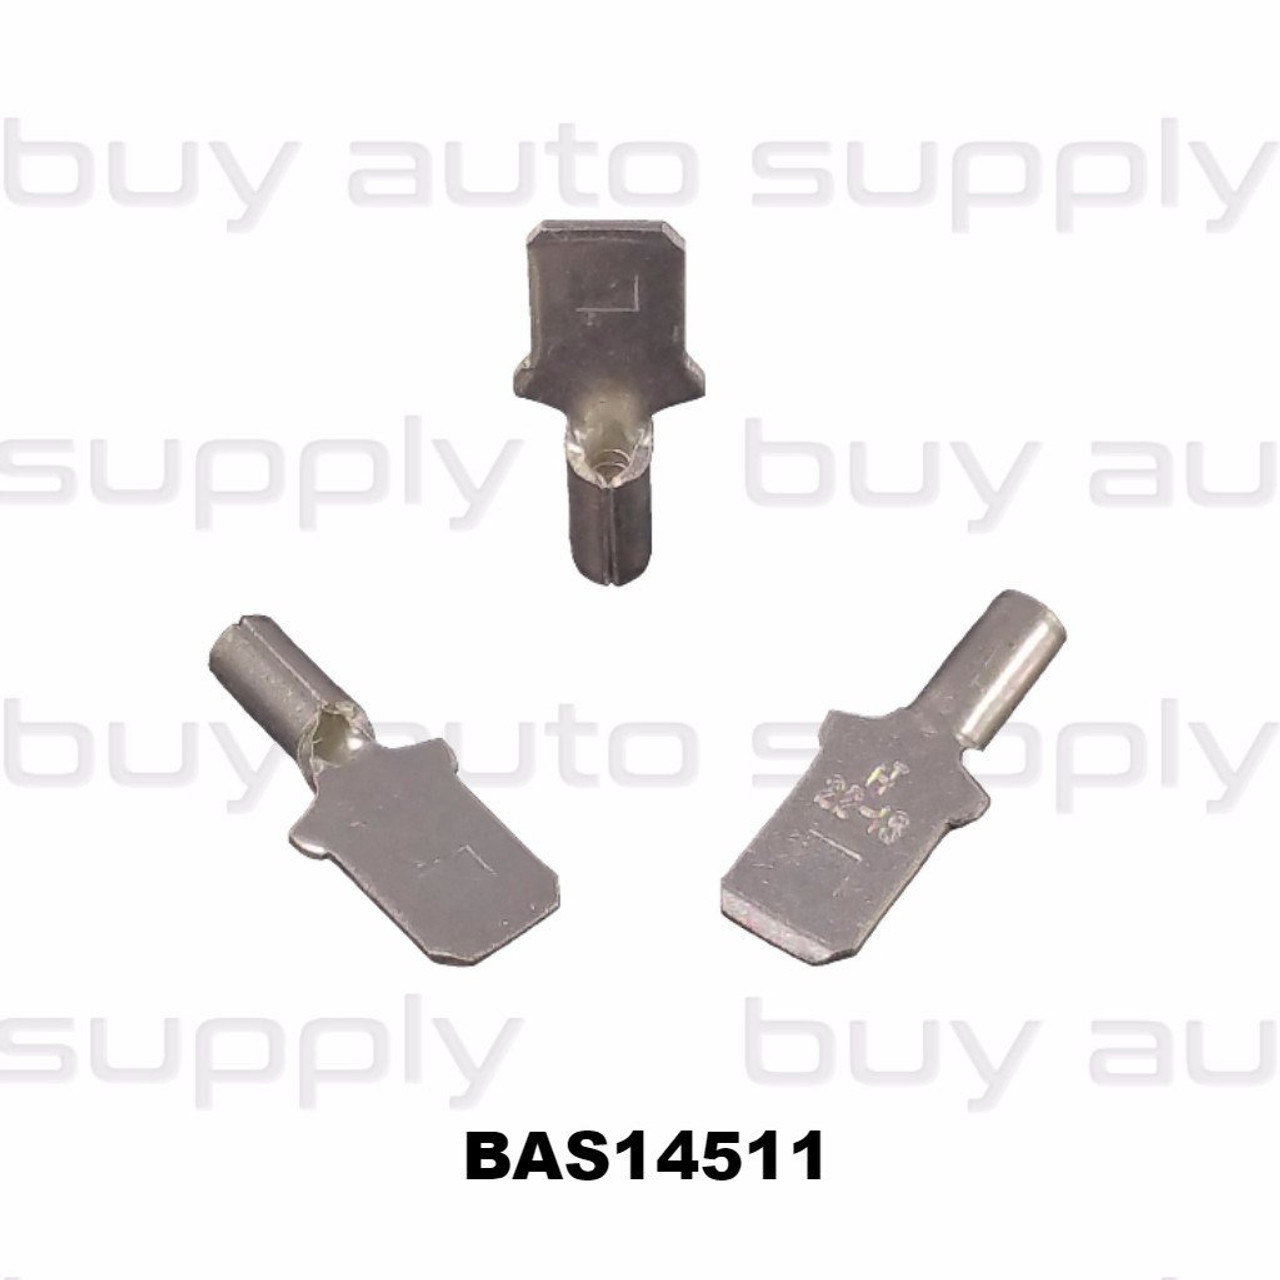 Male Quick Connect Terminal (Non-Insulated) 22-18 - BAS14511 - from Buy Auto Supply